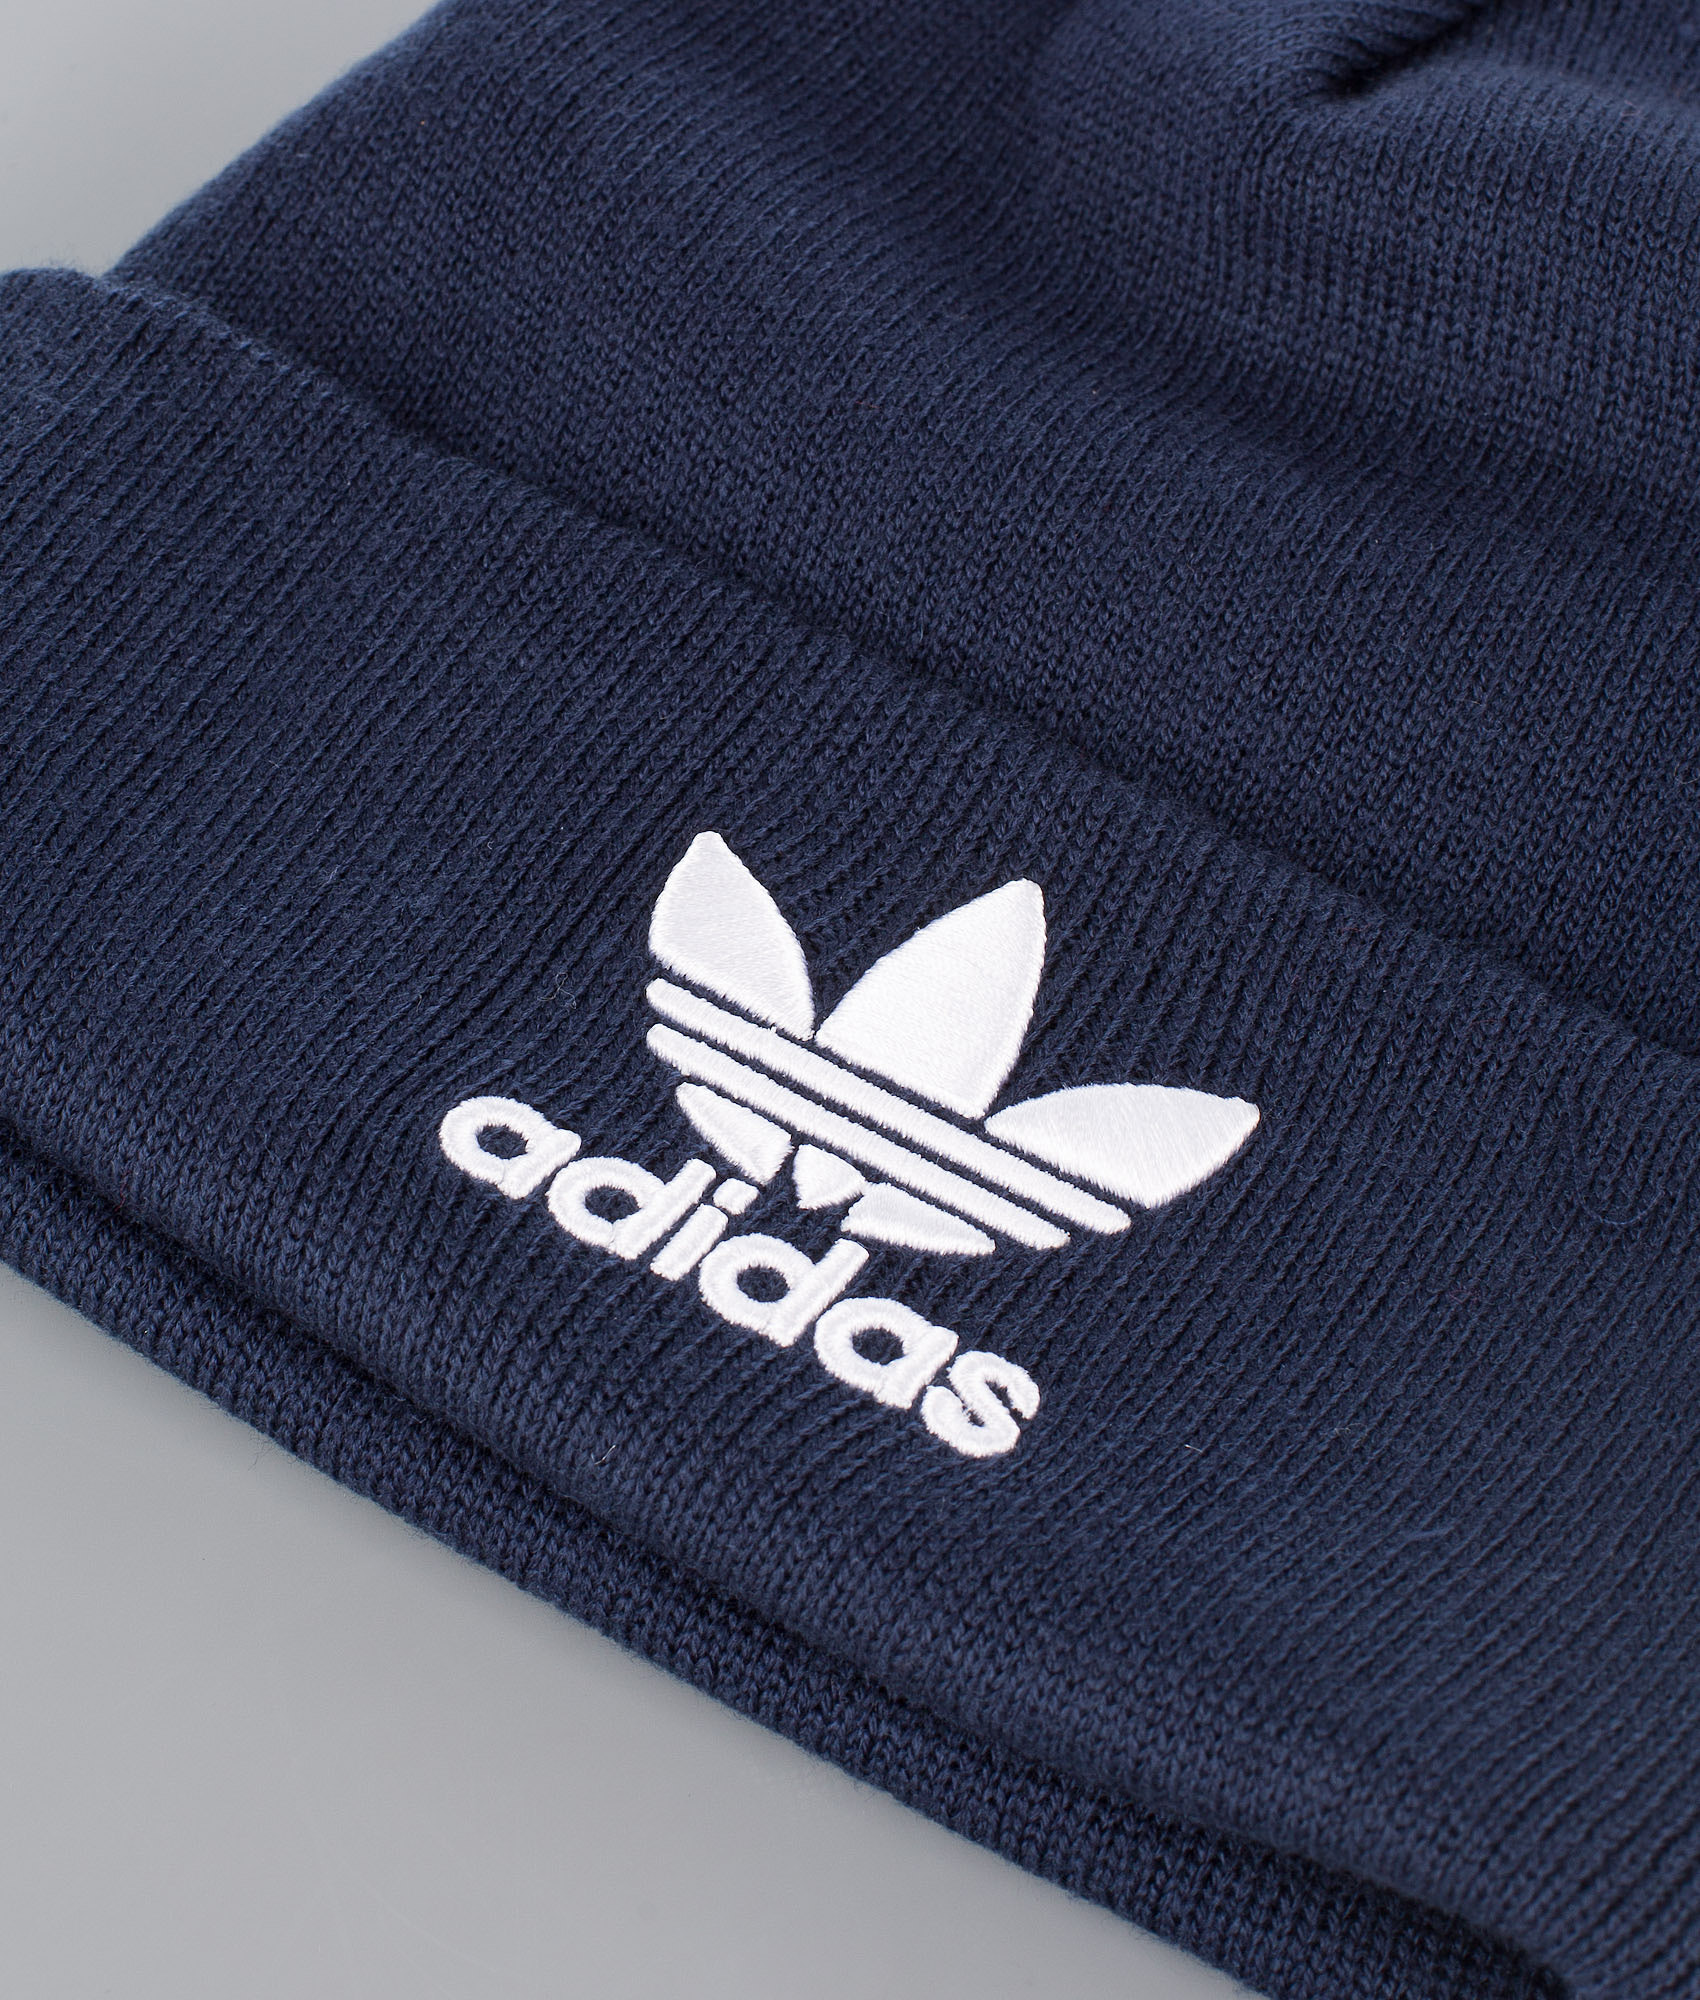 Adidas Originals Trefoil Berretto Collegiate Navy - Ridestore.it 180a48850668